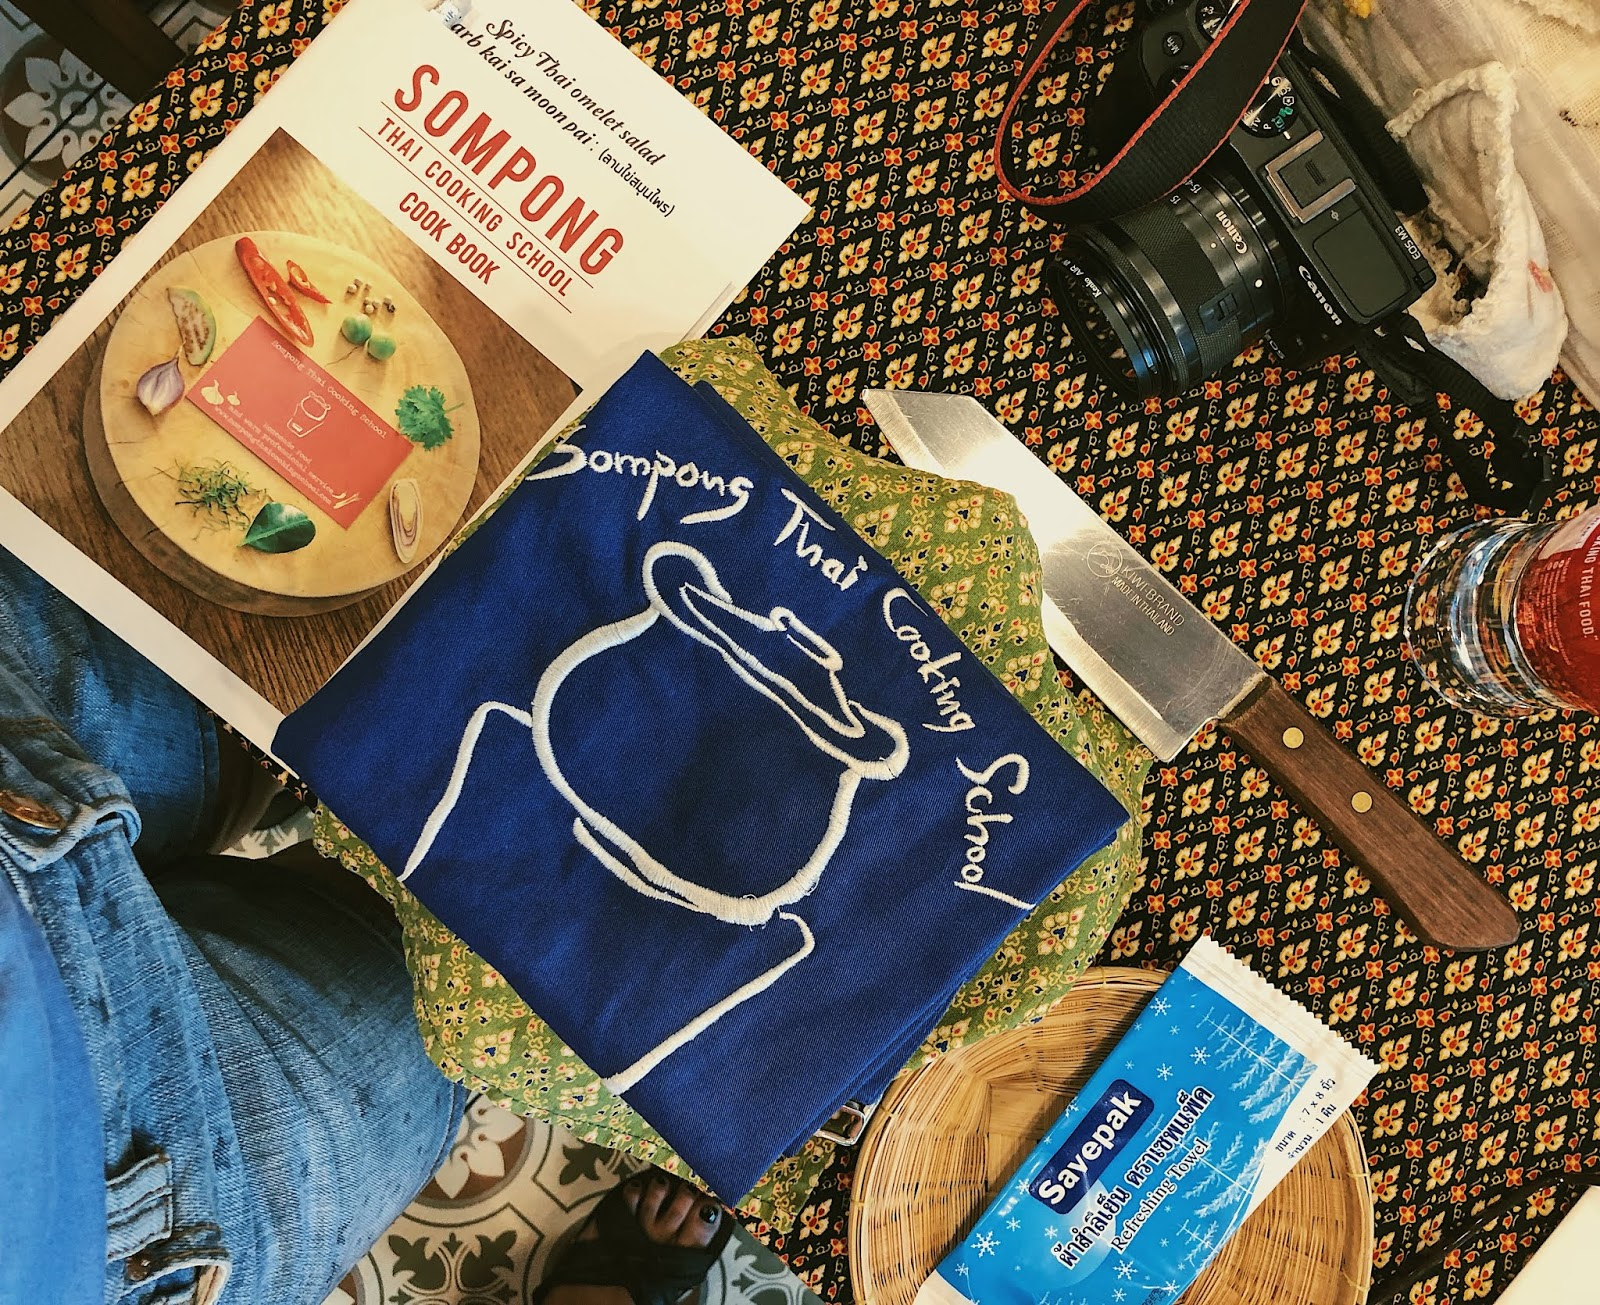 The cookbook and apron we will be using